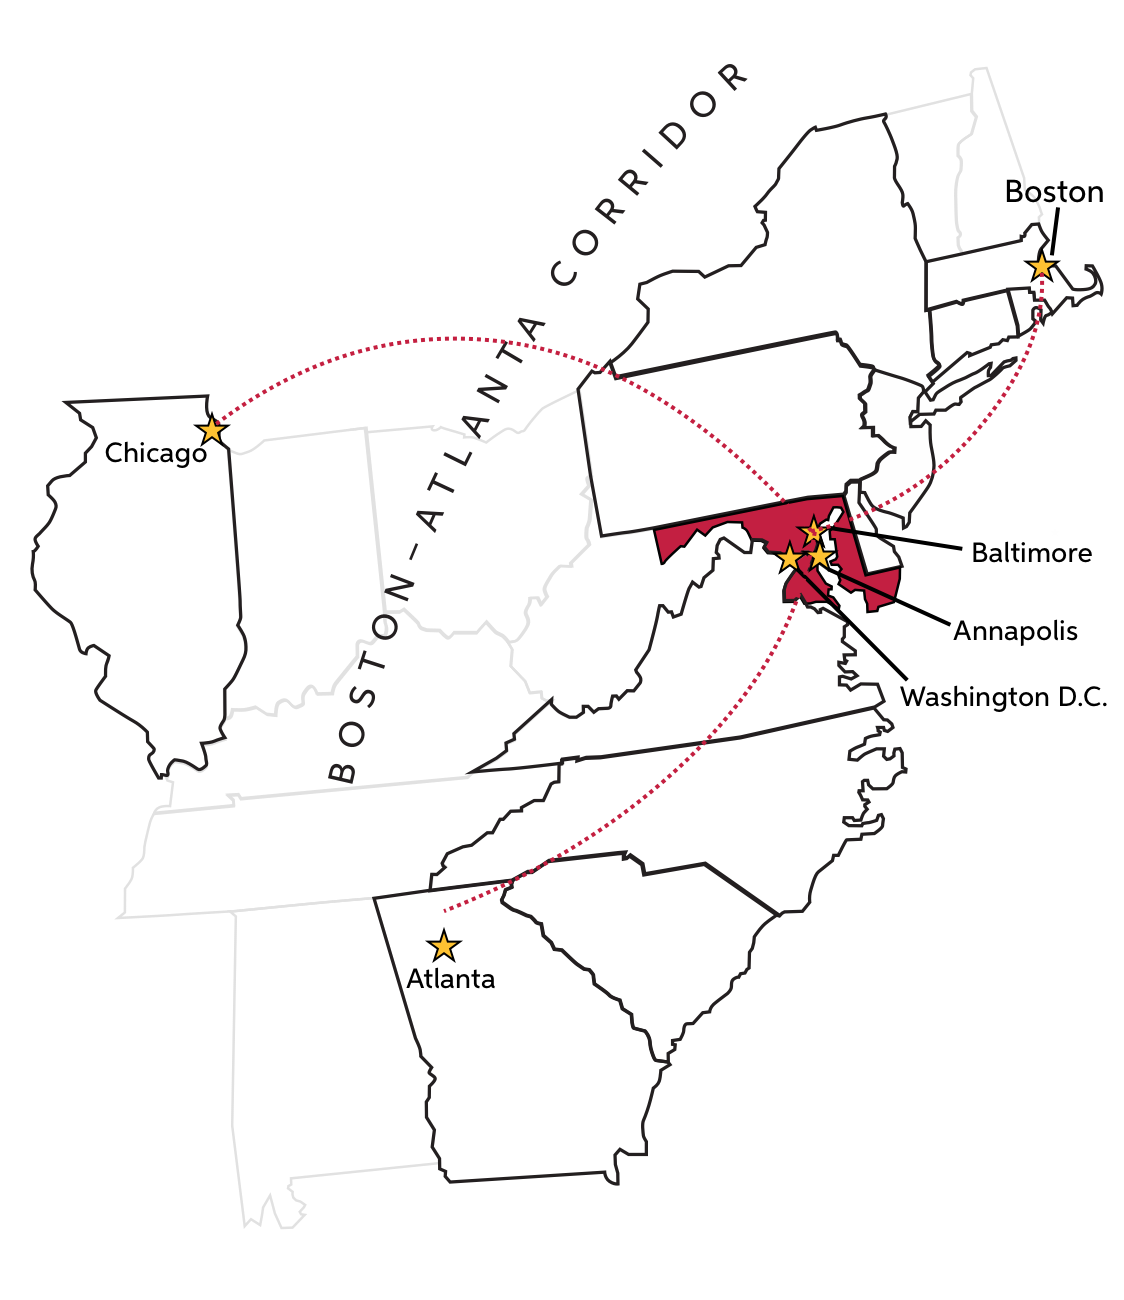 Maryland strategic location access, map of the east coast and mid western US